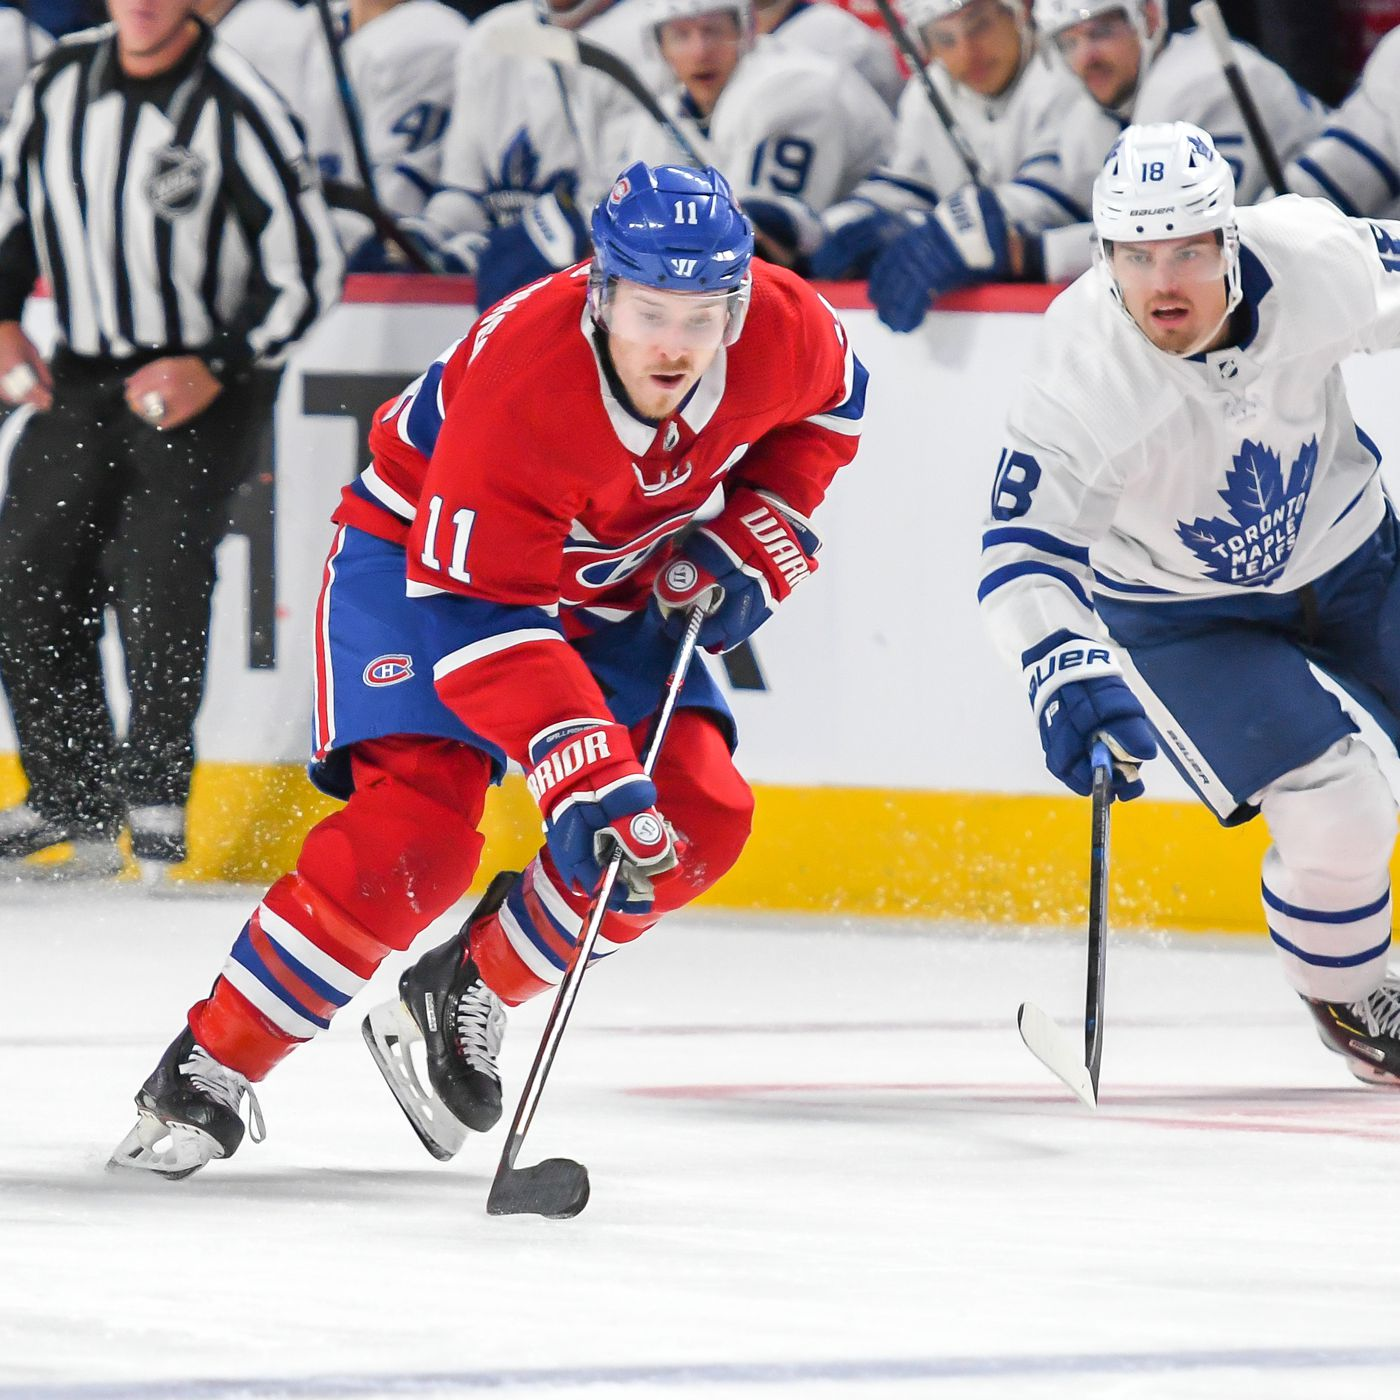 Canadiens Vs Maple Leafs Preview Start Time And How To Watch Eyes On The Prize